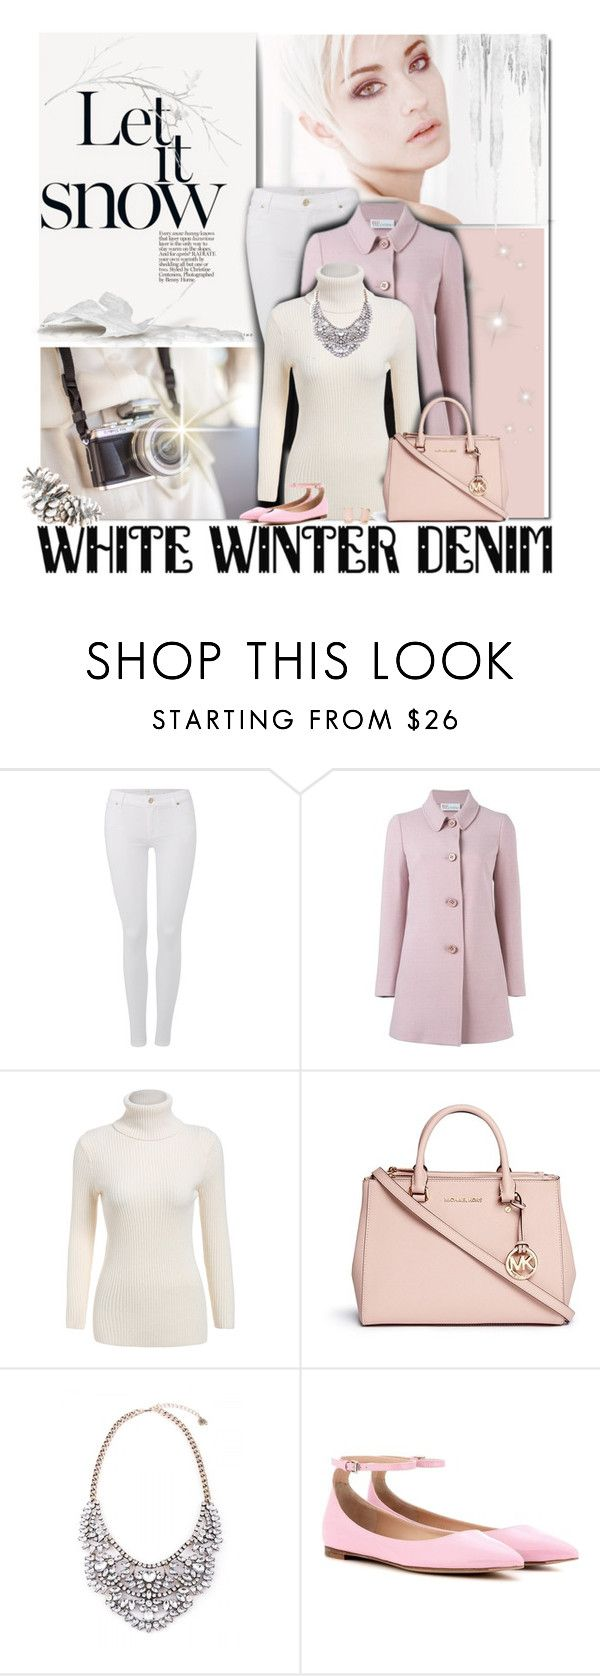 """""""On Trend: Winter White Denim"""" by cindycook10 ❤ liked on Polyvore featuring 7 For All Mankind, RED Valentino, Michael Kors, Gianvito Rossi, Kate Spade, women's clothing, women's fashion, women, female and woman"""